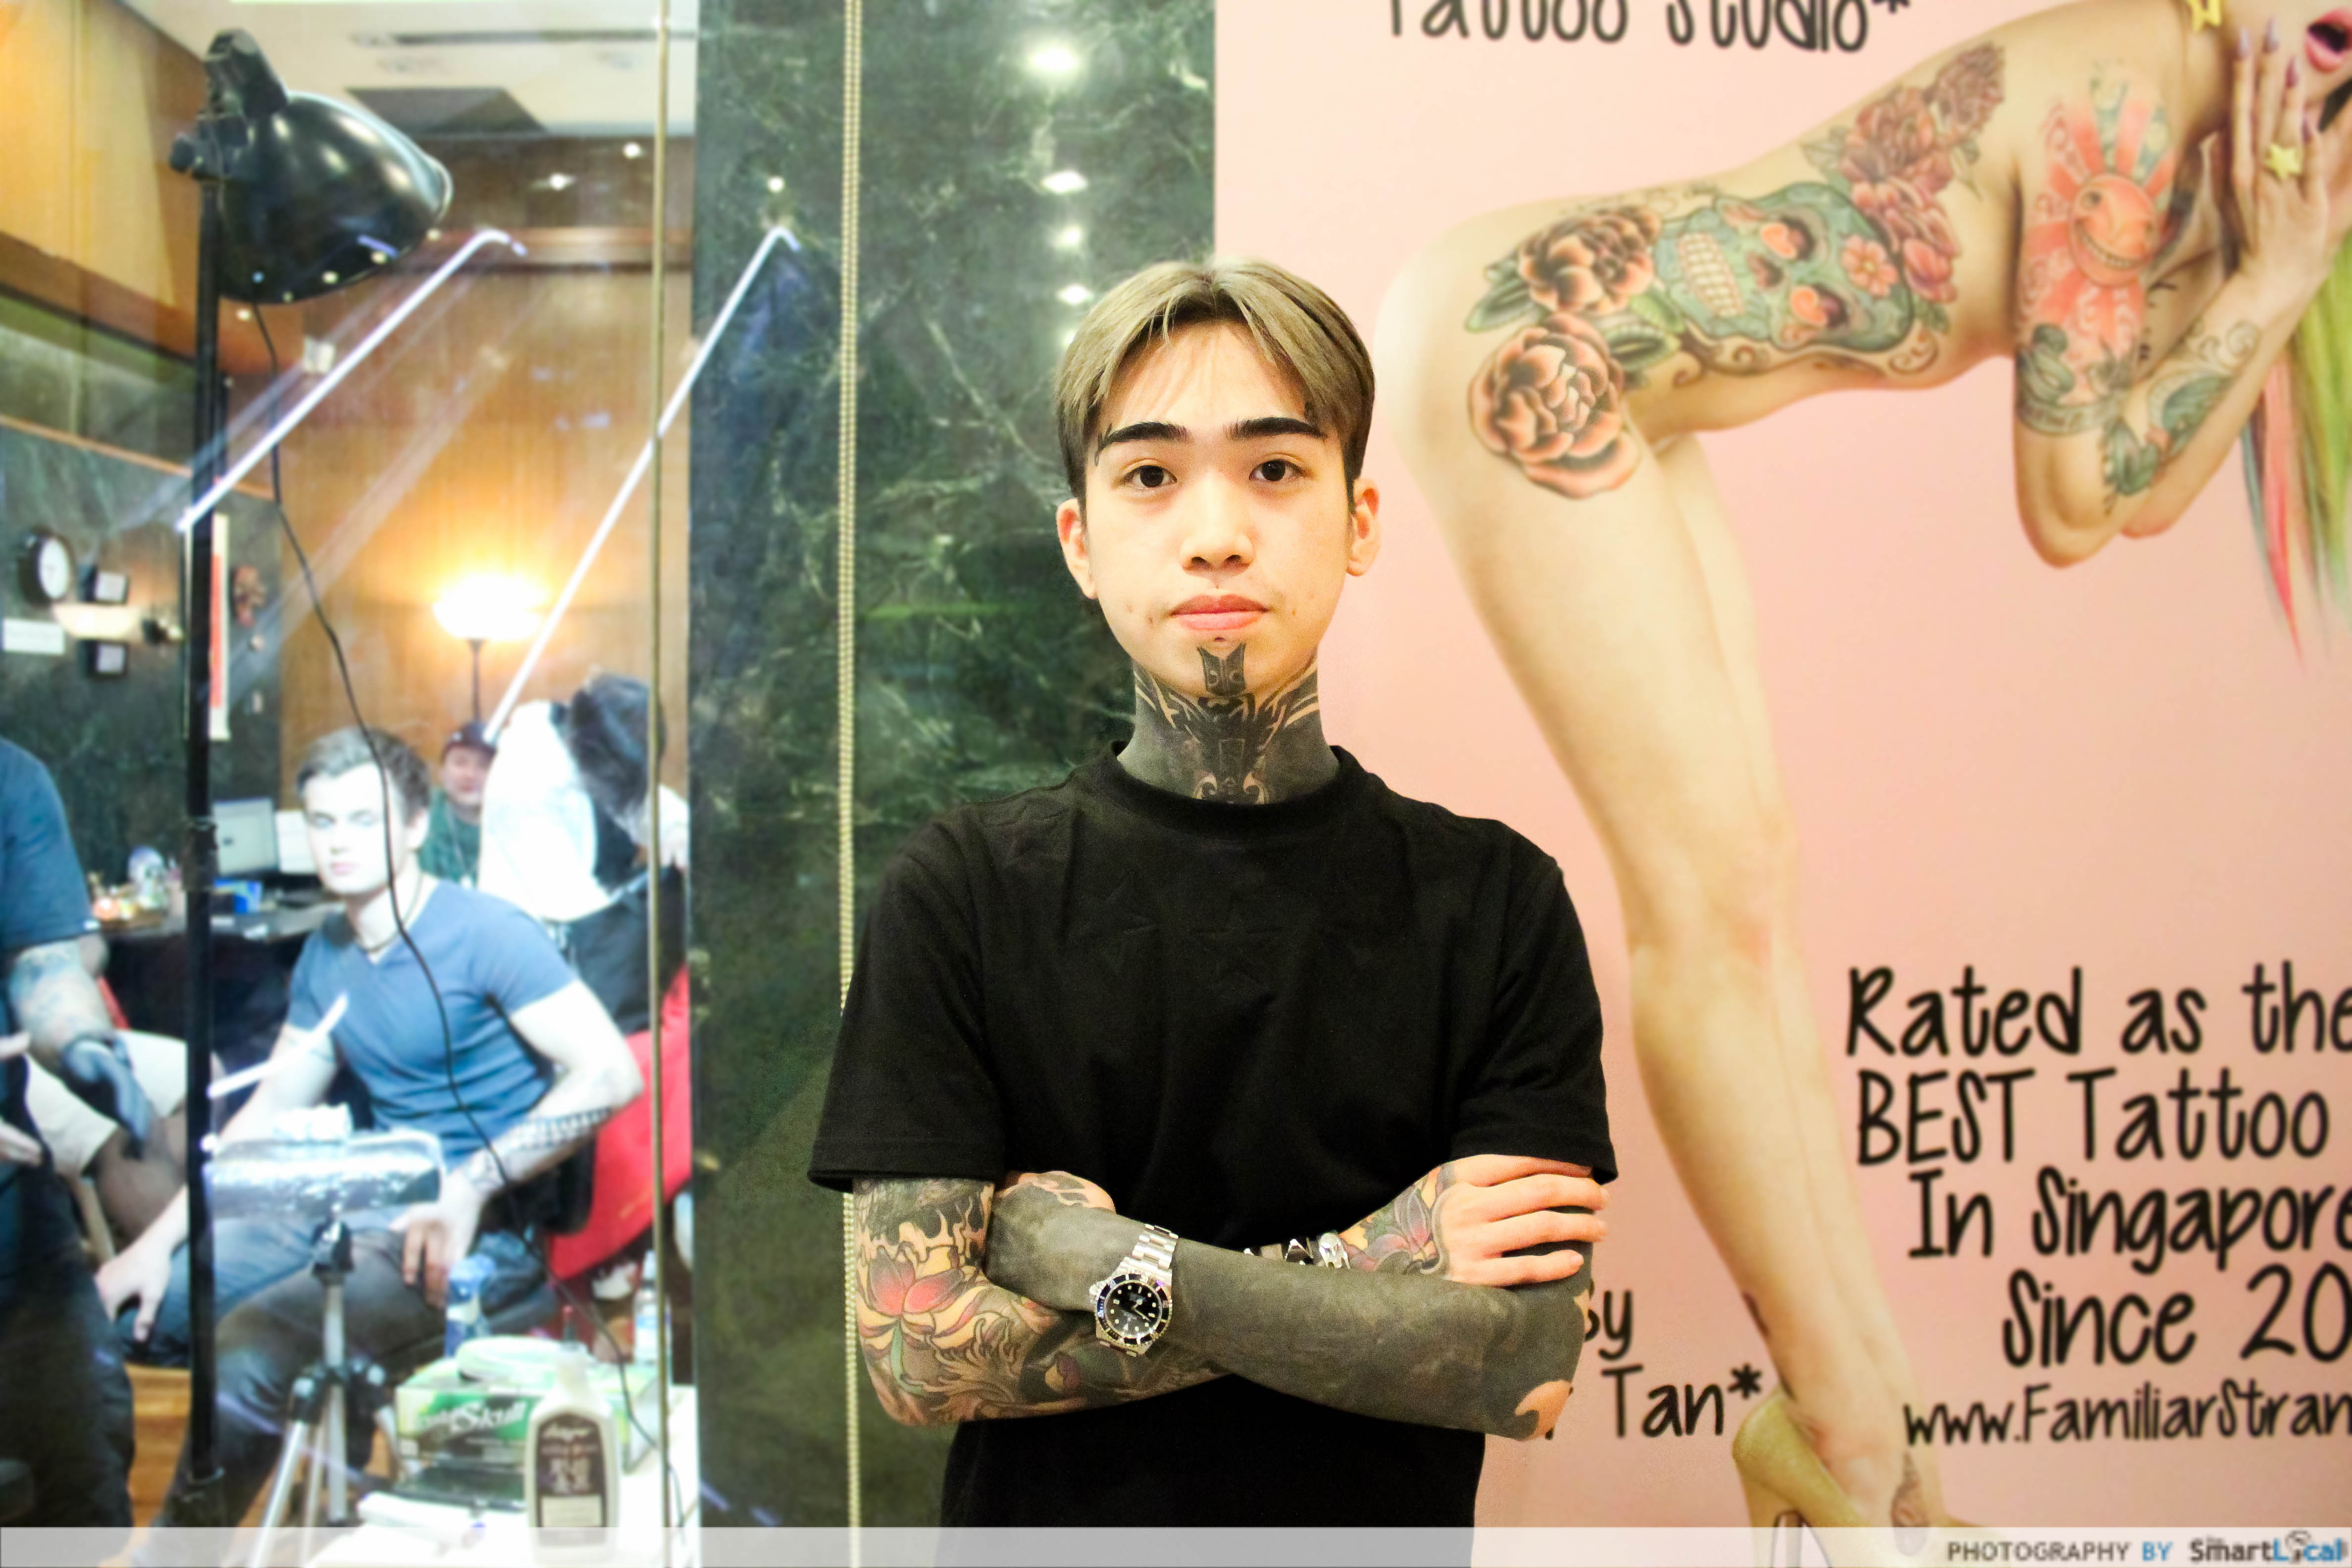 Tattoo artists of singapore questions you 39 ve always for Tattoo singapore forum